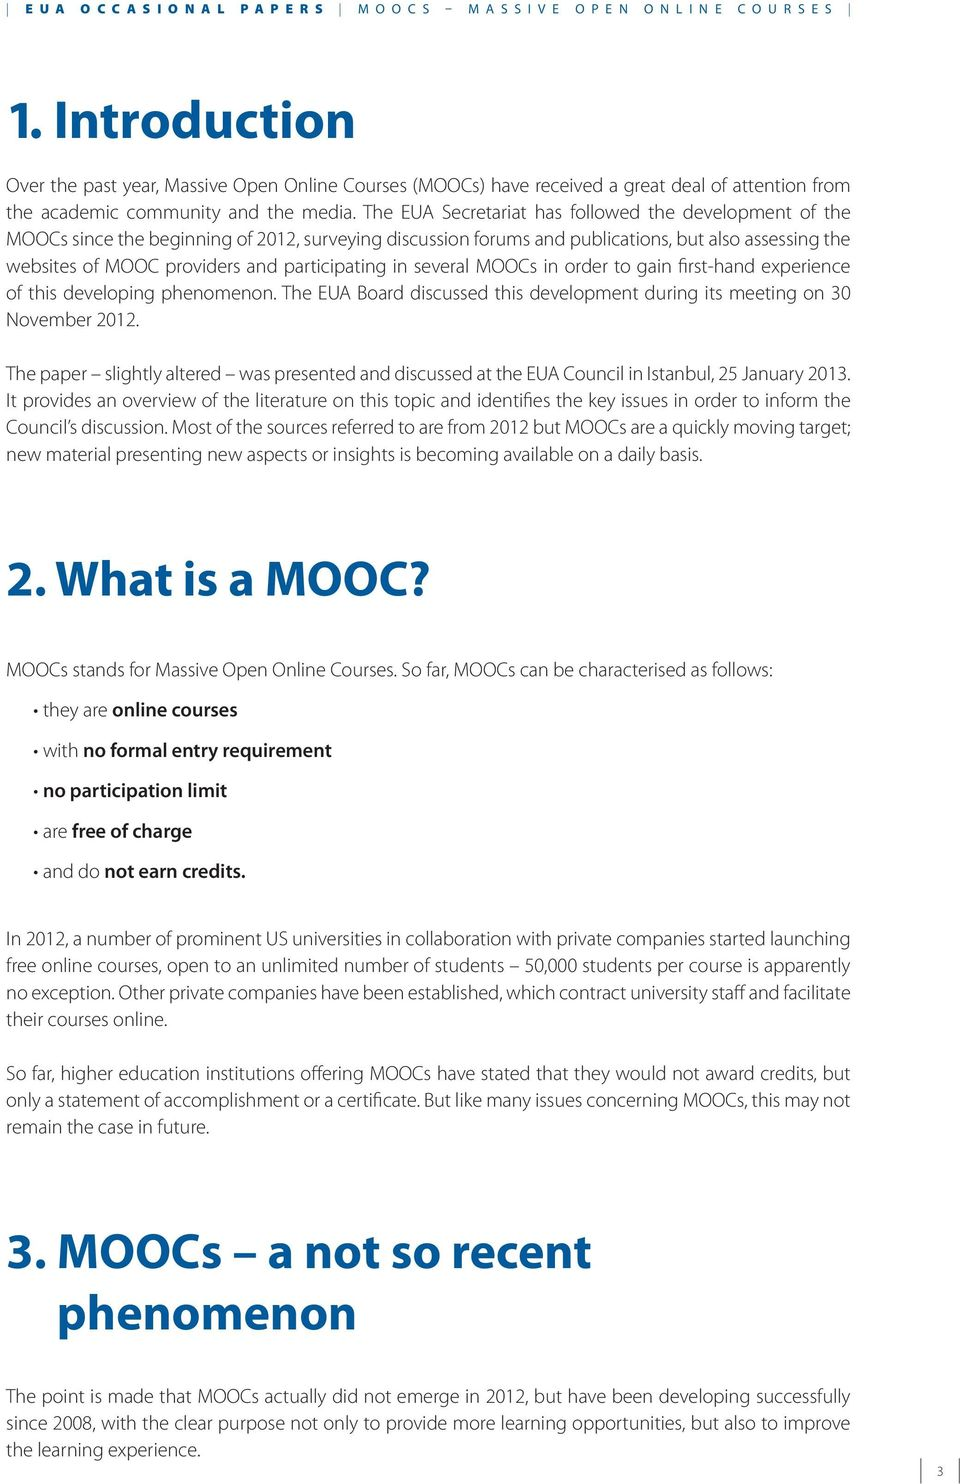 participating in several MOOCs in order to gain first-hand experience of this developing phenomenon. The EUA Board discussed this development during its meeting on 30 November 2012.